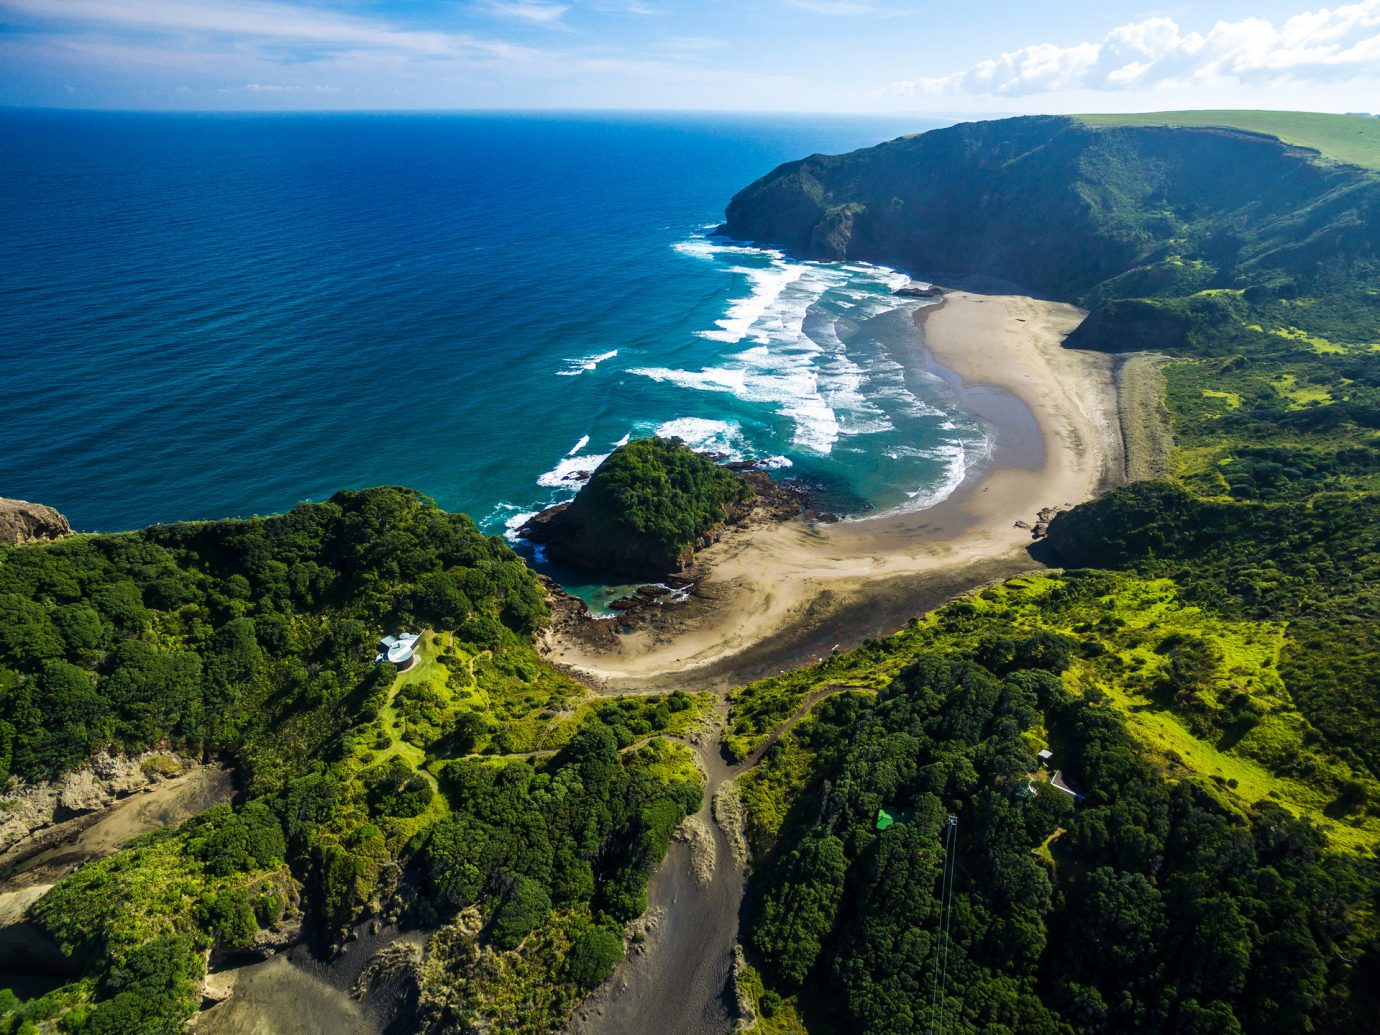 Offbeat water outdoor sky Nature mountain landform geographical feature aerial photography body of water Coast Sea hill fjord Lake landscape loch mountain range reservoir cliff cape crater lake terrain bay overlooking hillside